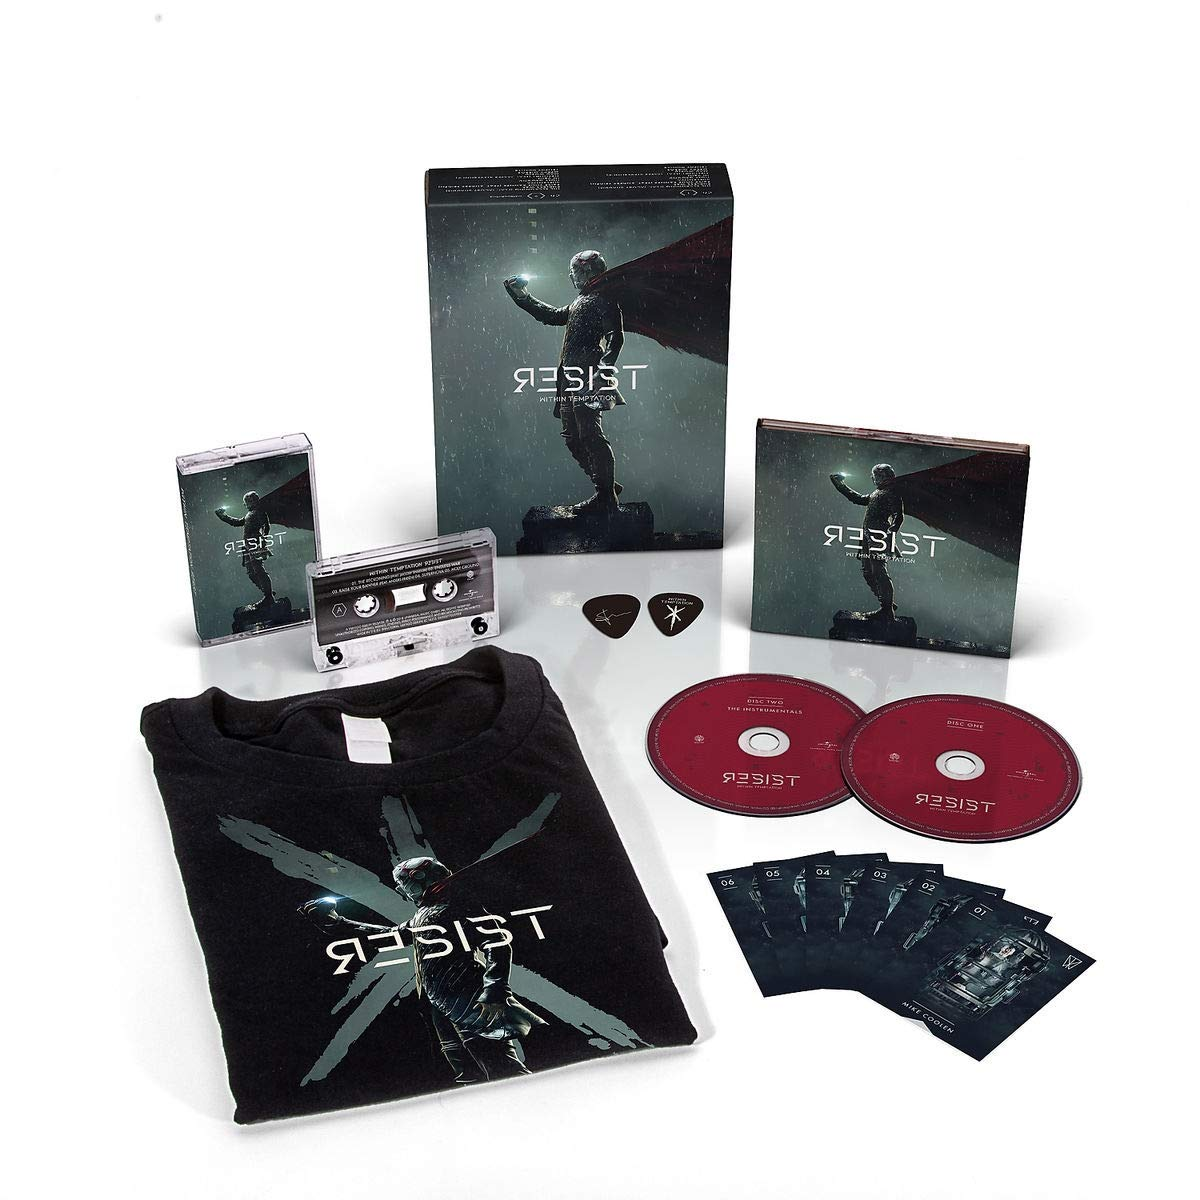 Within Temptation - Resist [Limited Edition Box Set 2 CD/Cassette/Large T-Shirt]